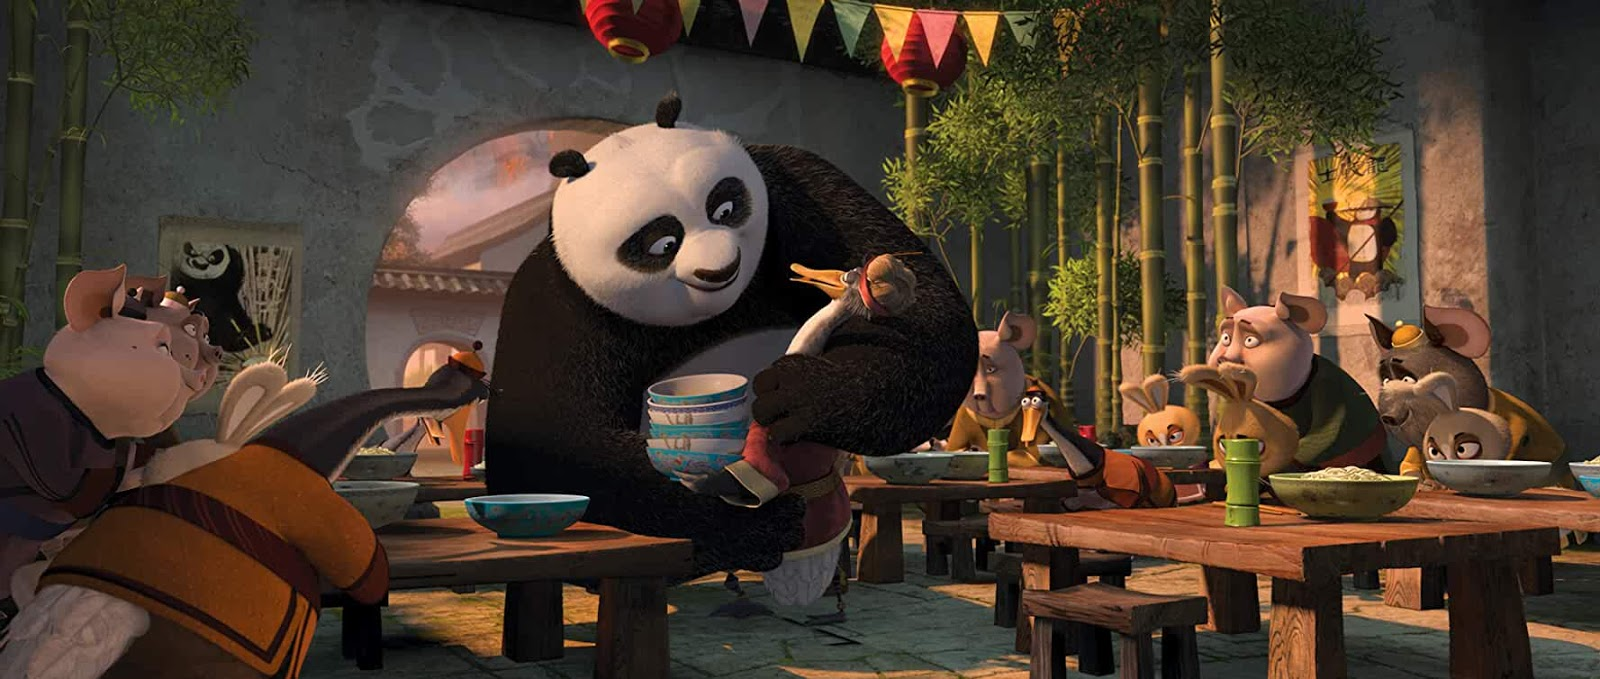 Kung Fu Panda 2 (2011) Full Movie Hindi Dubbed